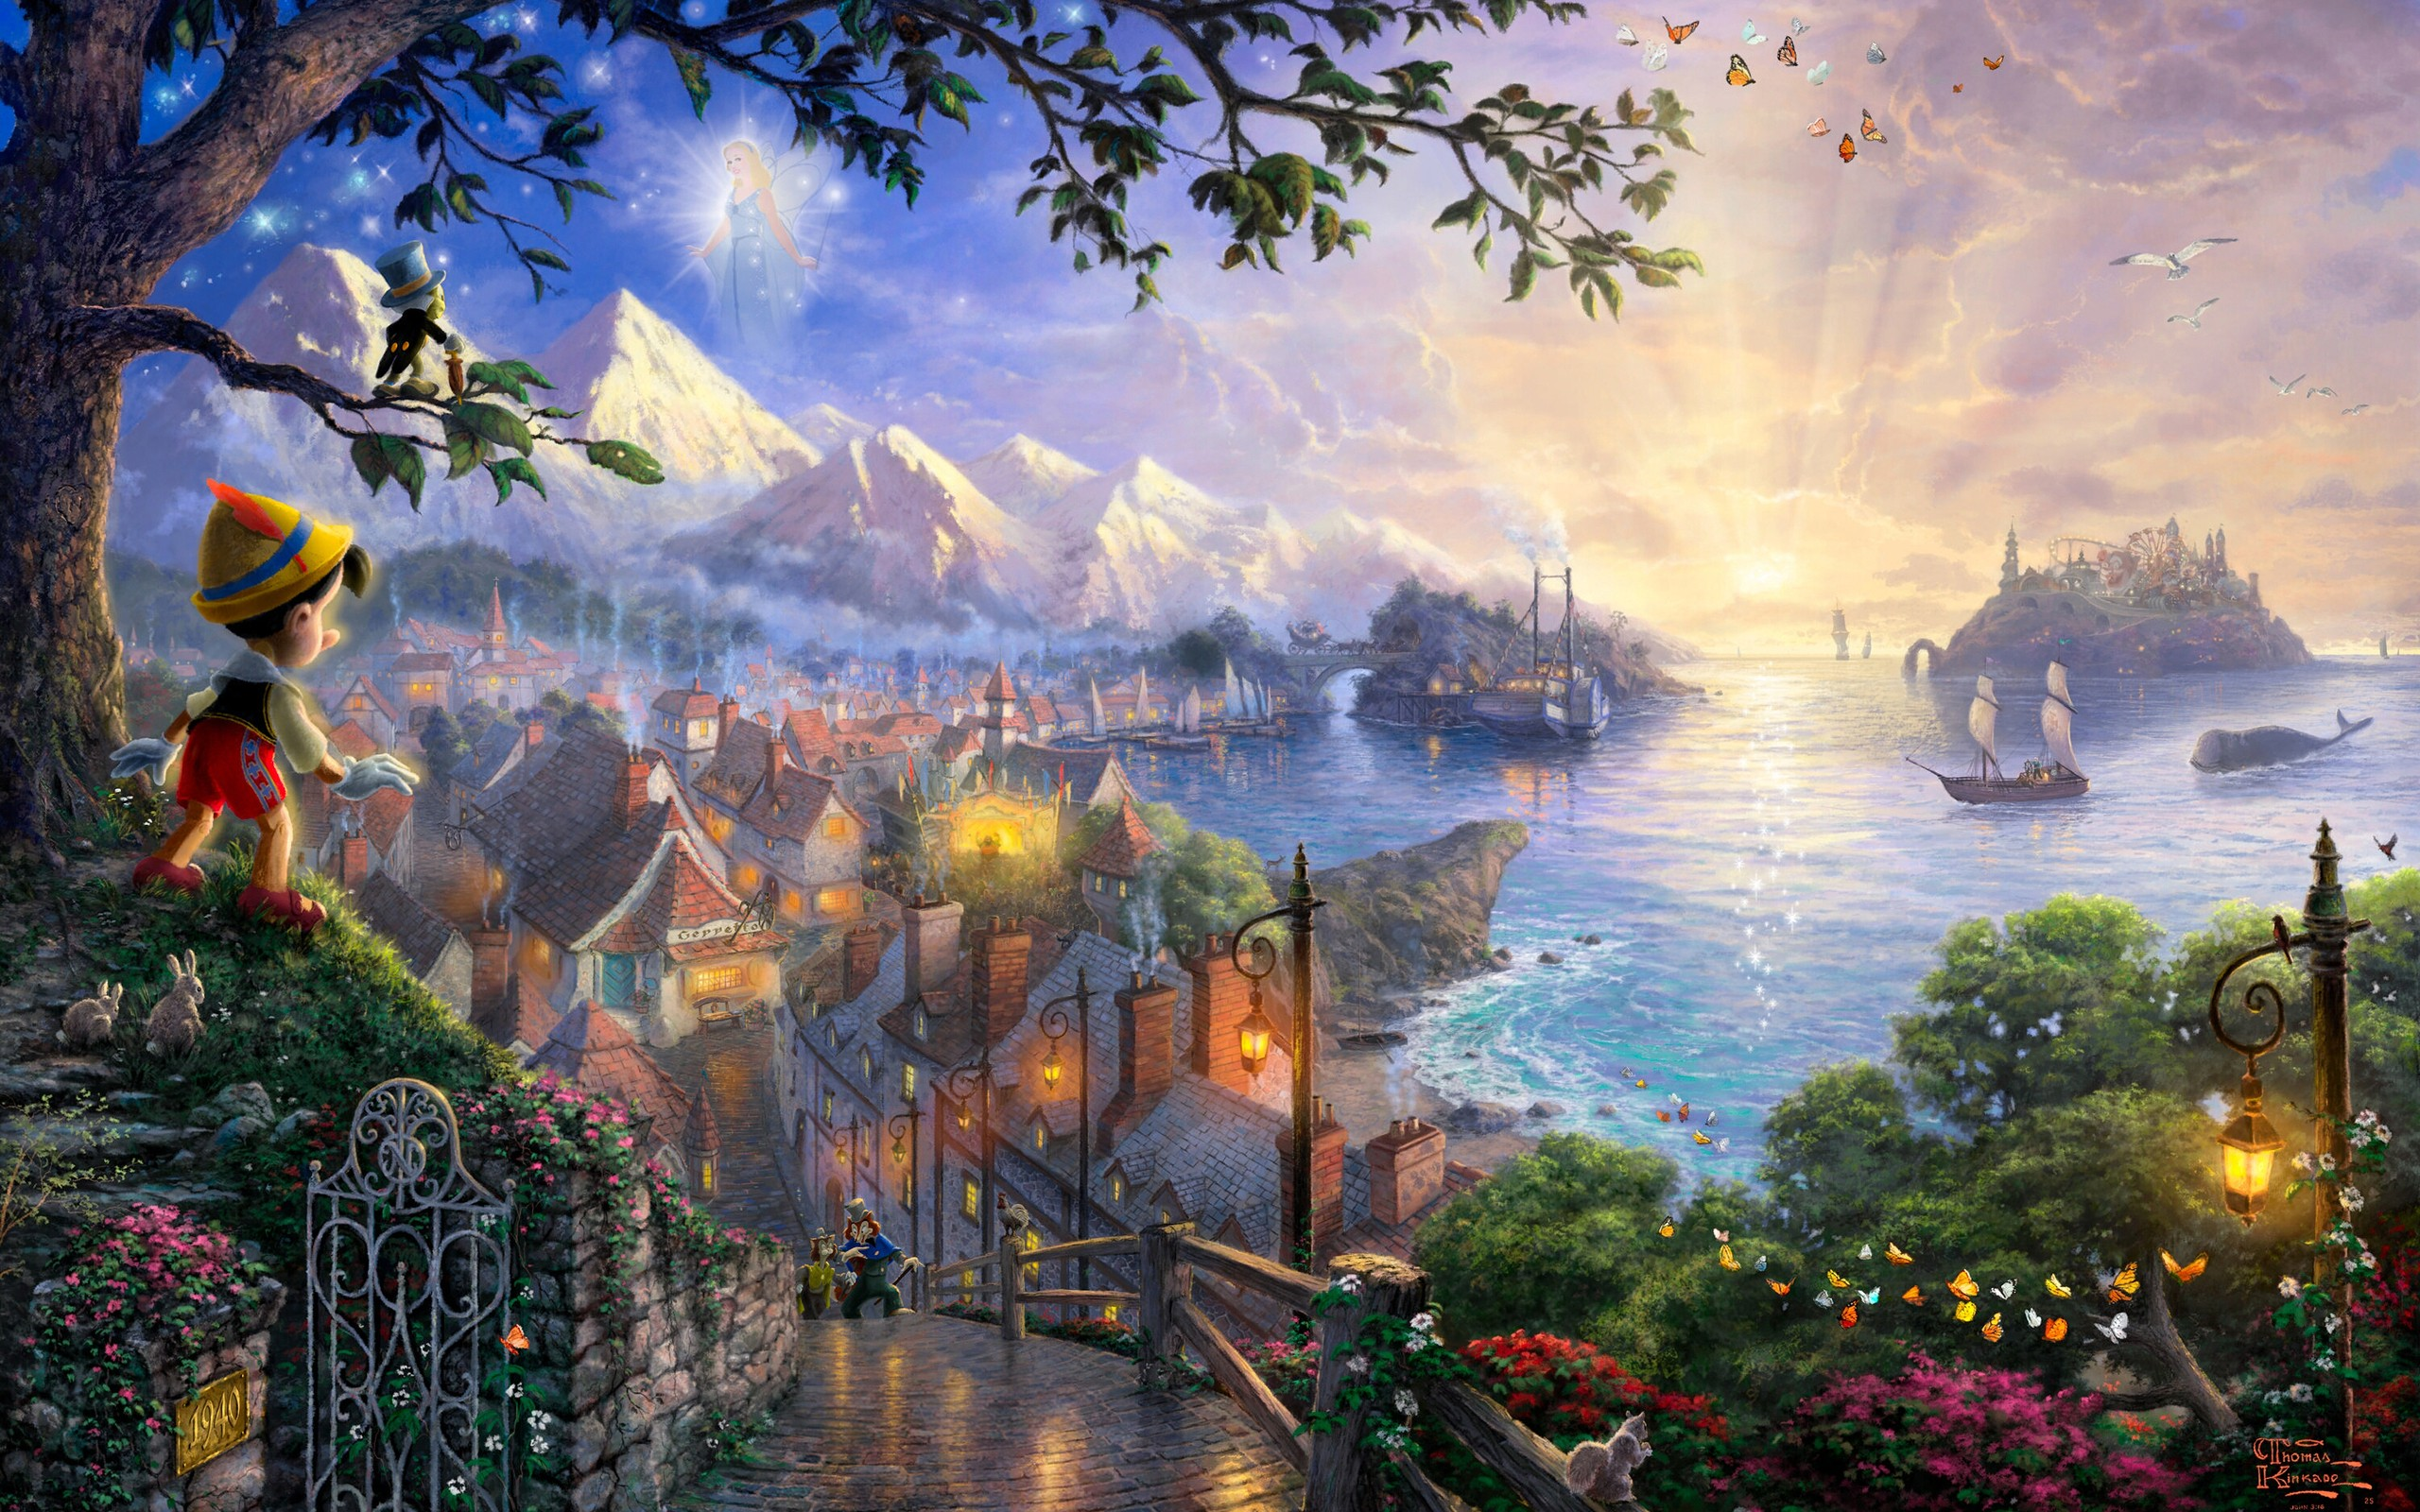 Sunset landscapes disney company movies ships fantasy art 2560x1600